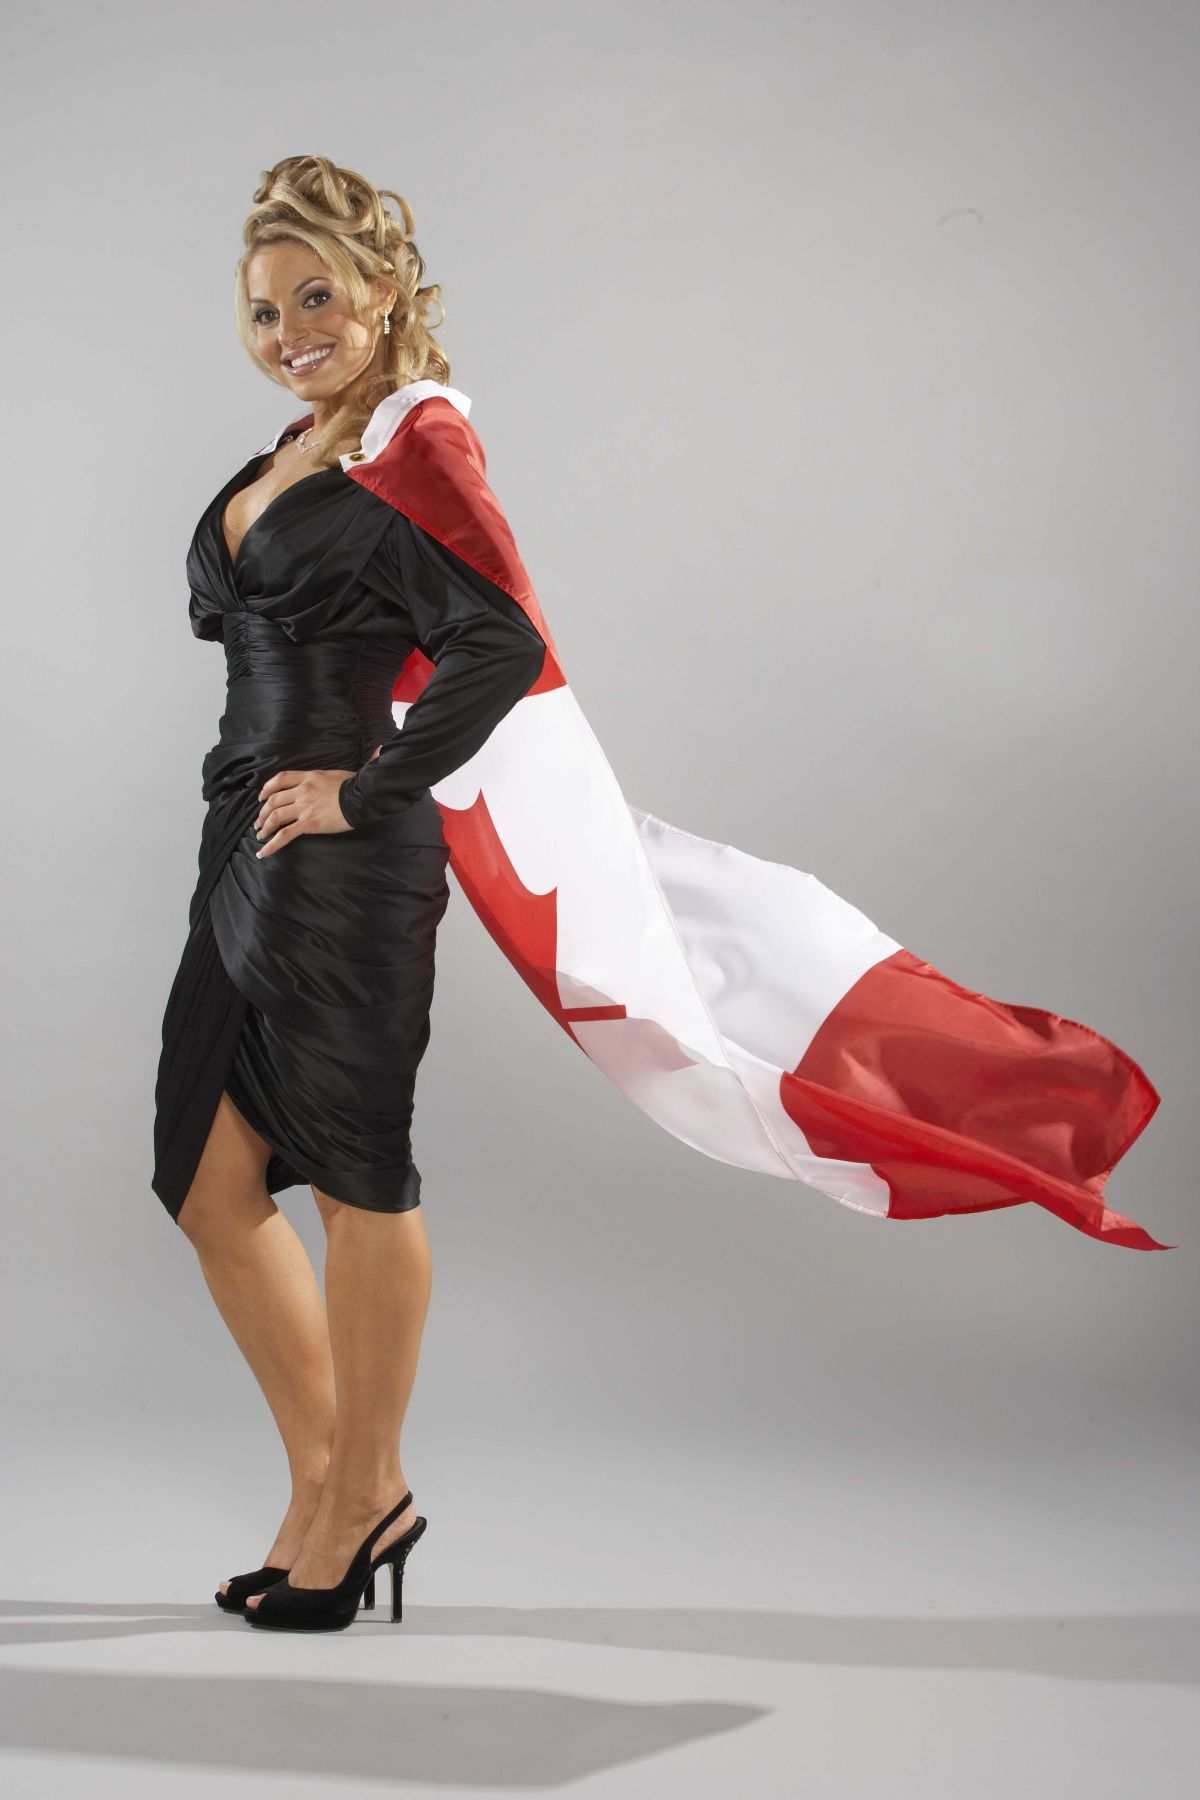 Best from the Past - TRISH STRATUS Hosts Canadian Walk of Fame, 2006 Photoshoot